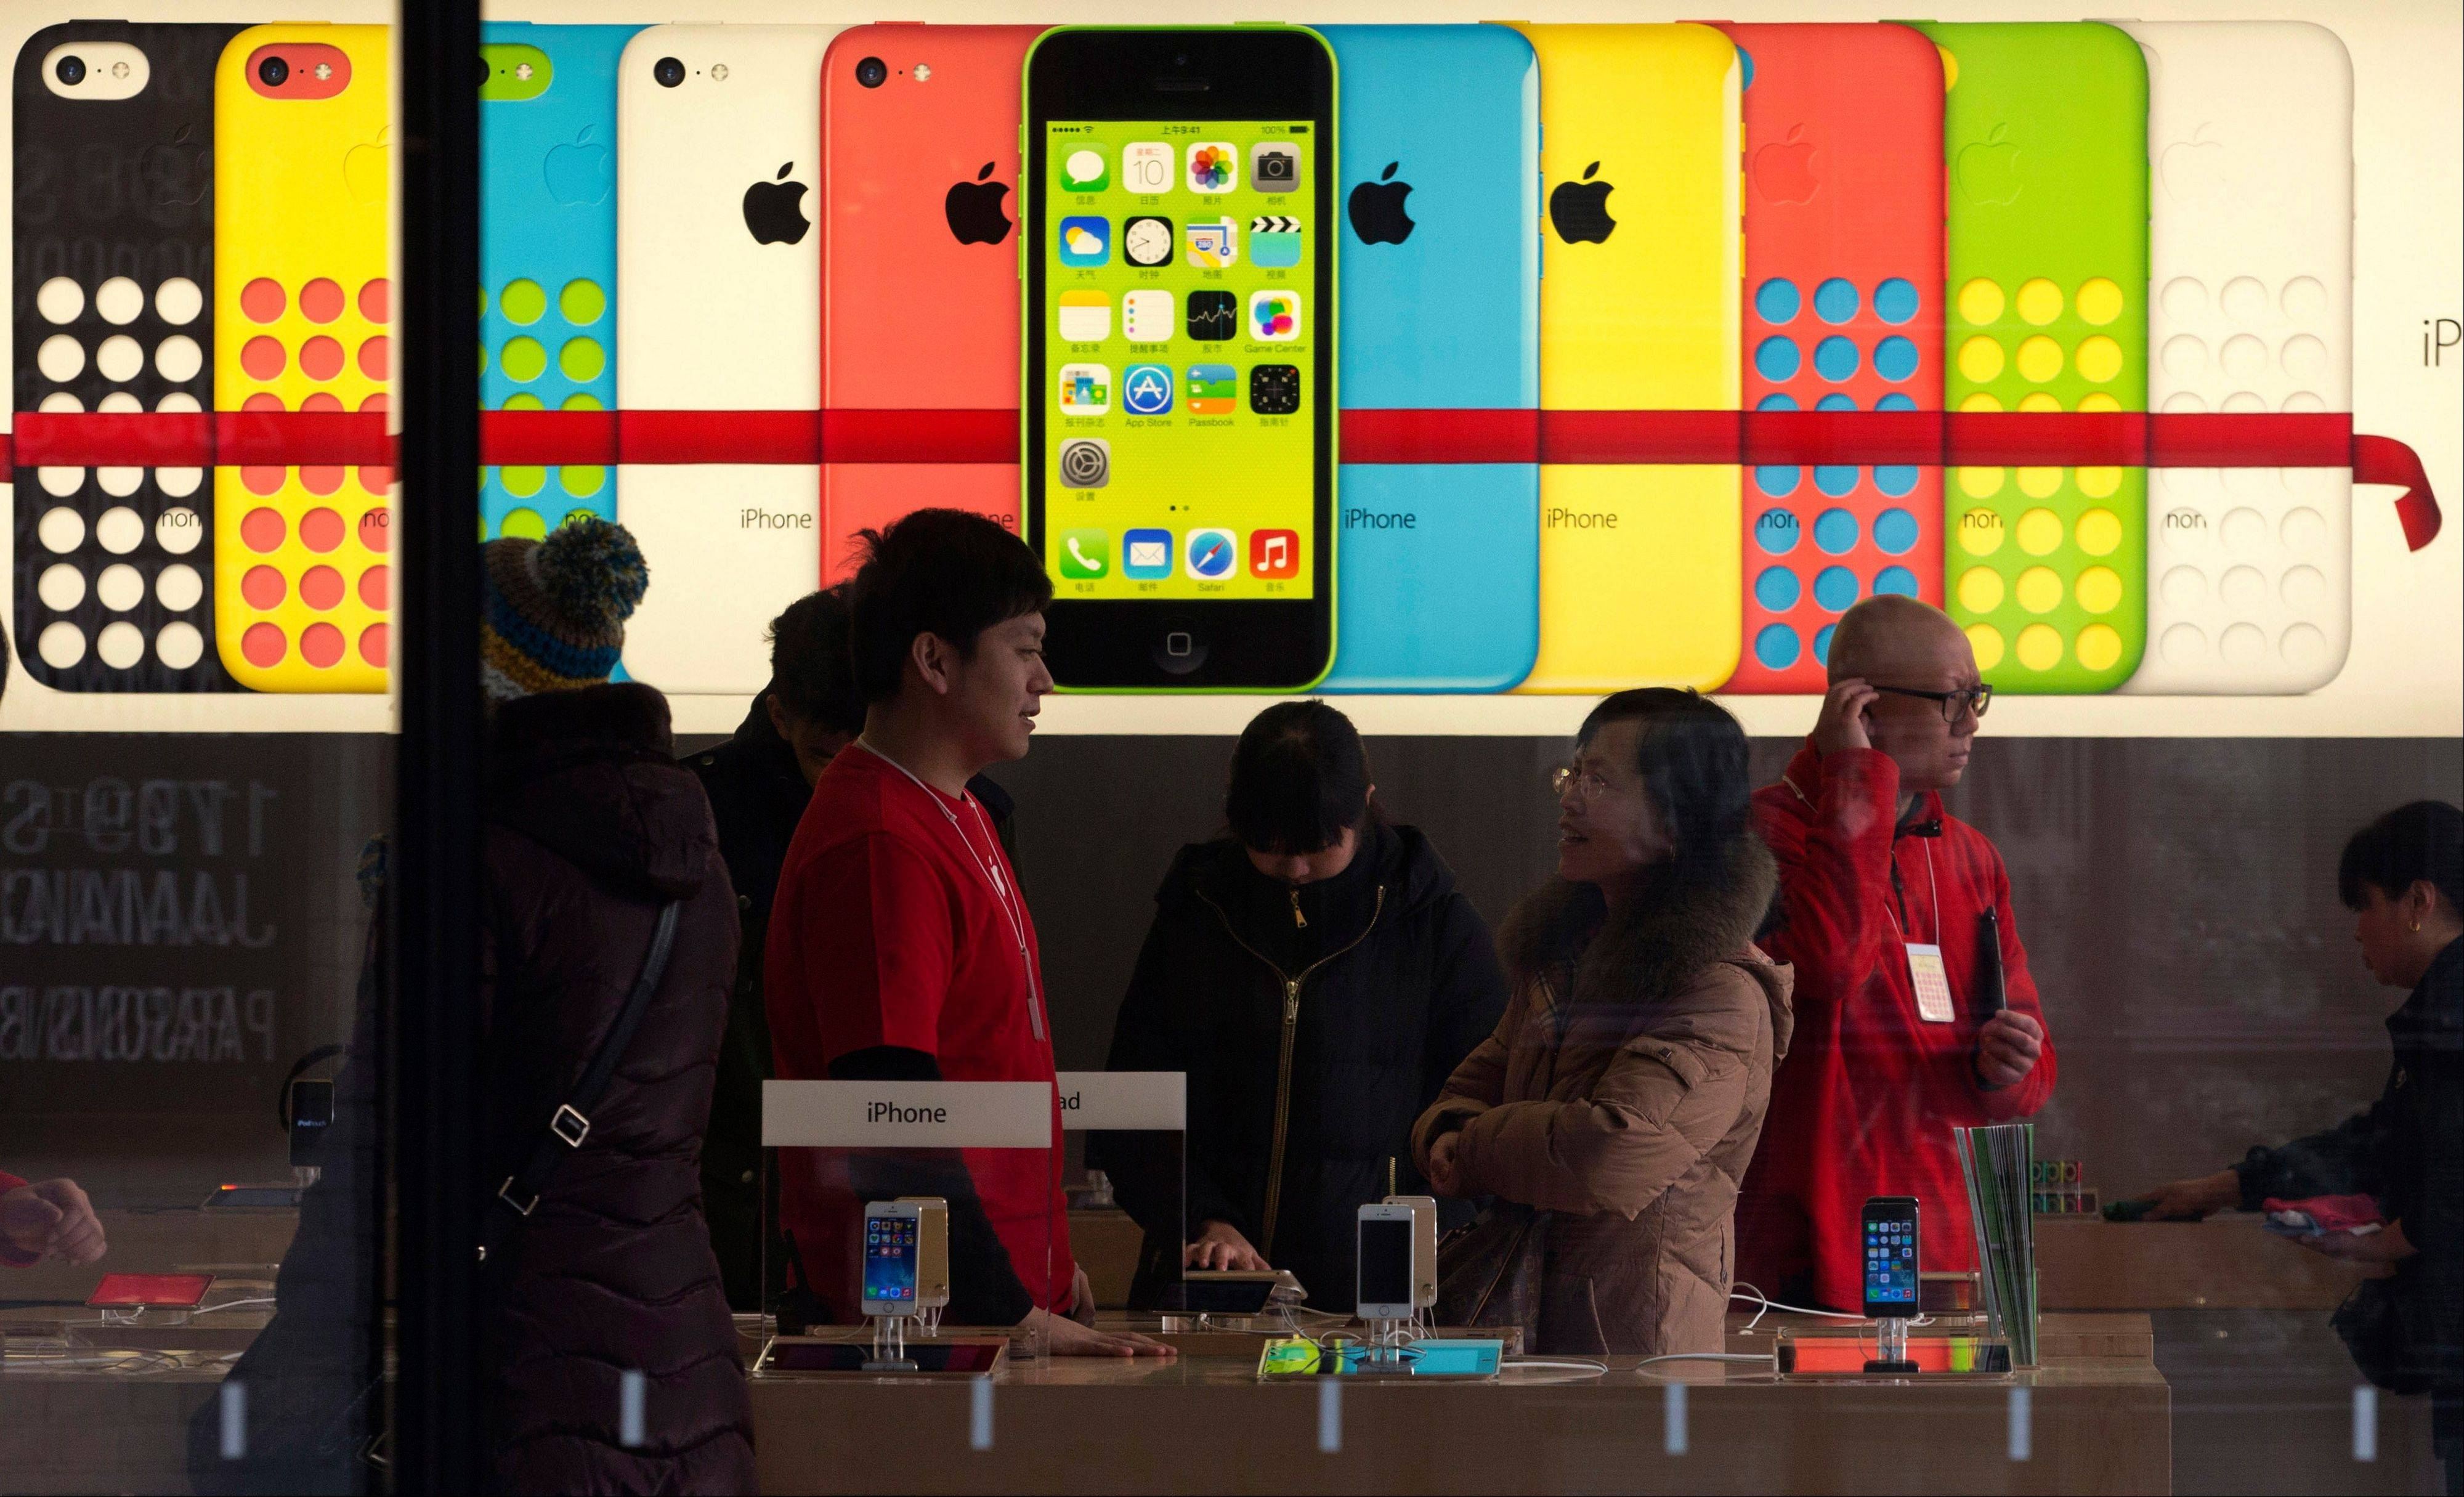 A woman talks to a salesperson in front of an advertisement for iPhones at Apple's retail store in Beijing Monday. Apple Inc. might have a chance to pep up cooling iPhone sales in China if it finally can reach a deal with the world's biggest phone carrier.